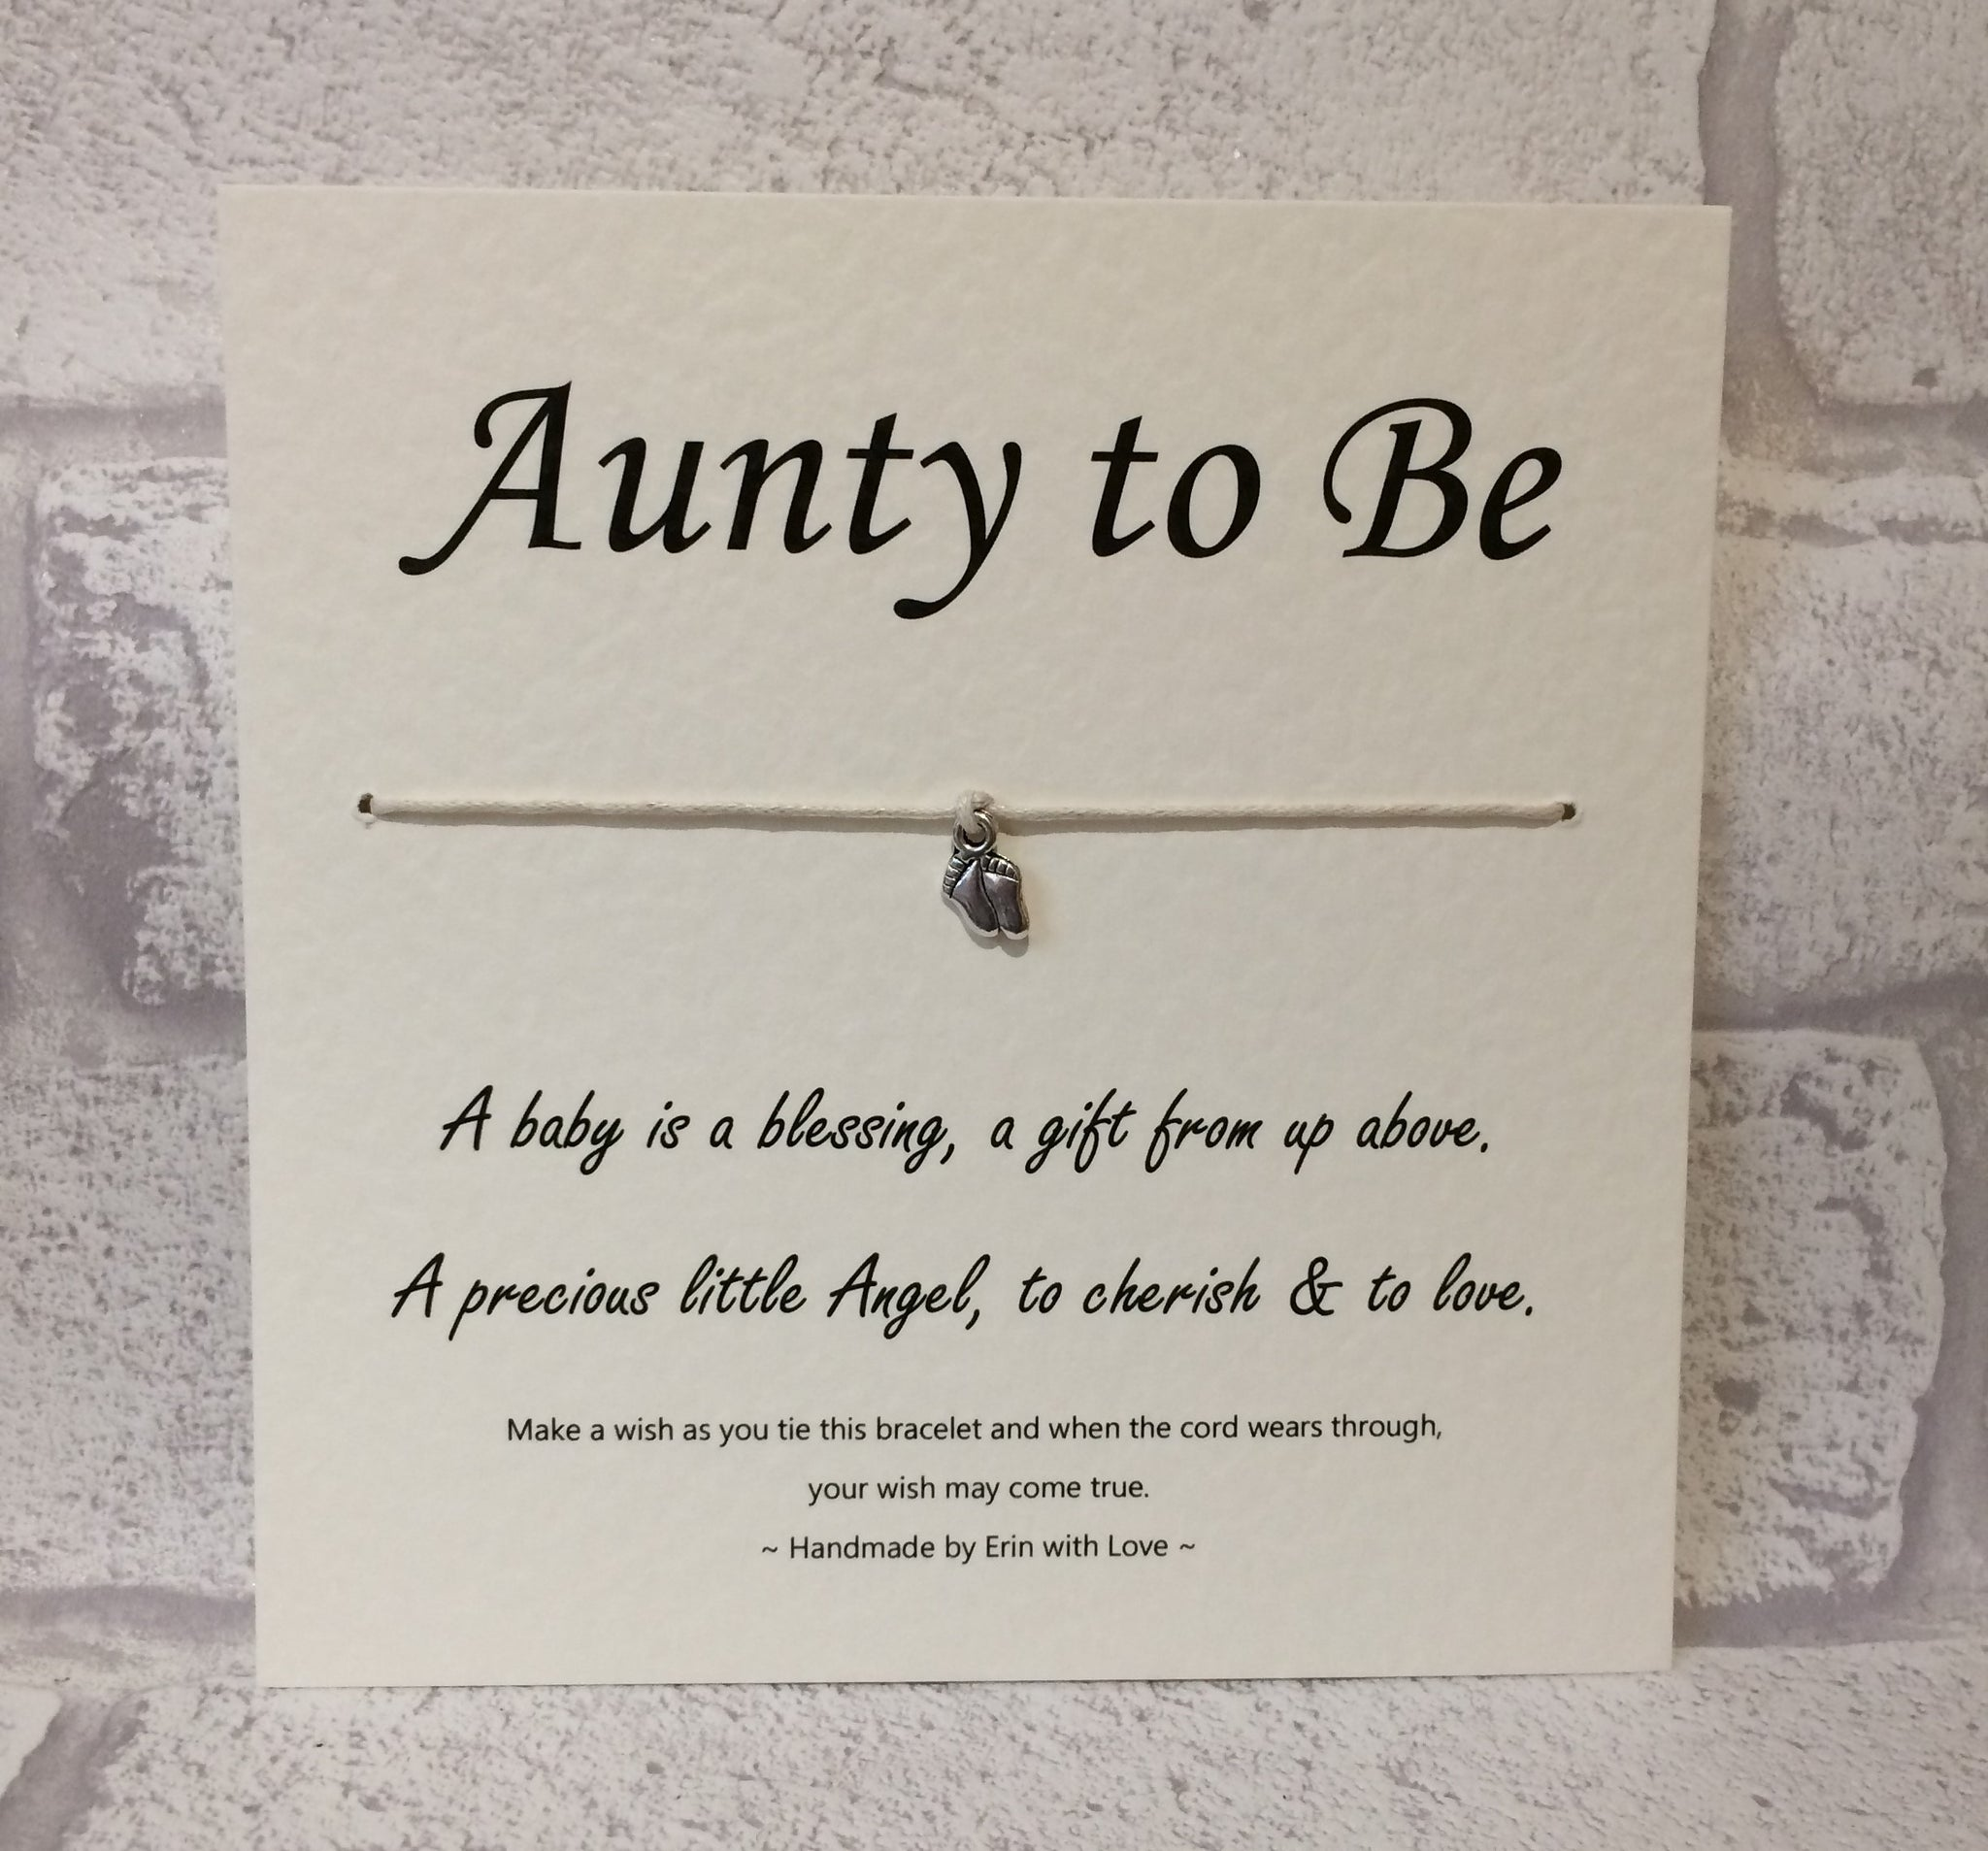 B - Aunty To Be  Wish Bracelet